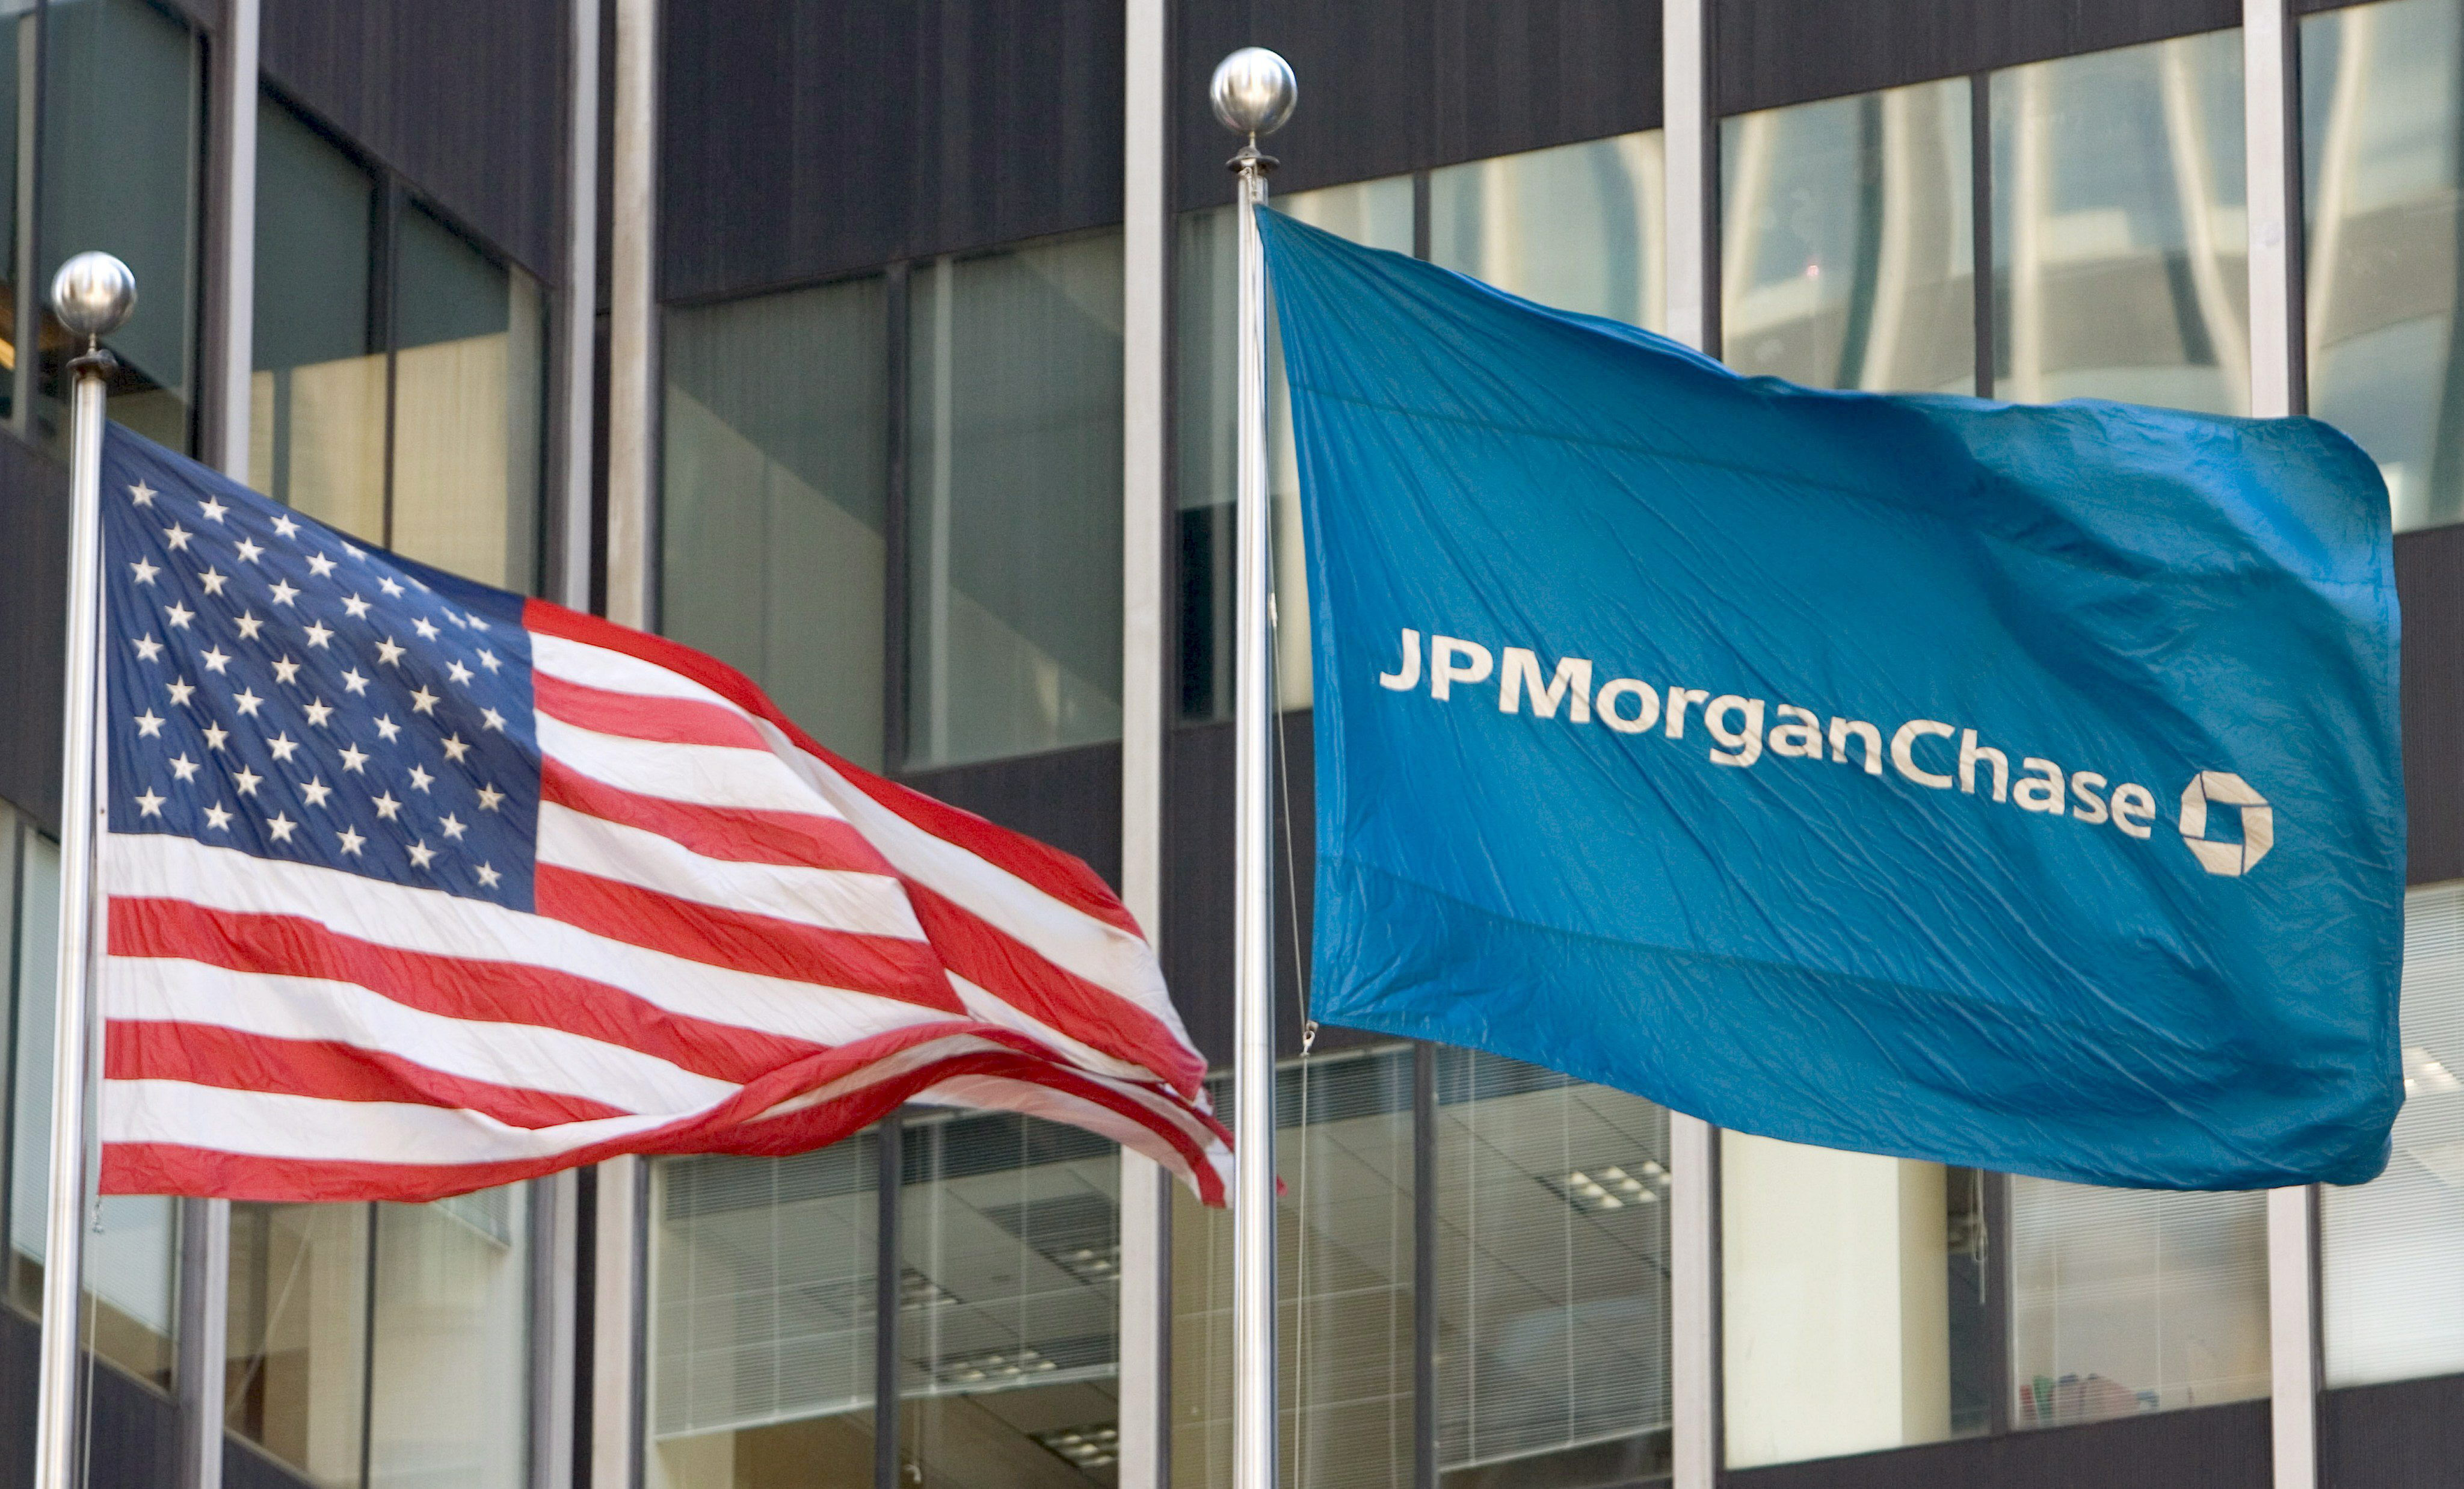 home loans and bear stearns jpmorgan chase Jp morgan chase said sunday it will acquire rival bear stearns for a bargain-basement $2362 million, a stunning collapse for one of the world's largest and most storied investment banks.